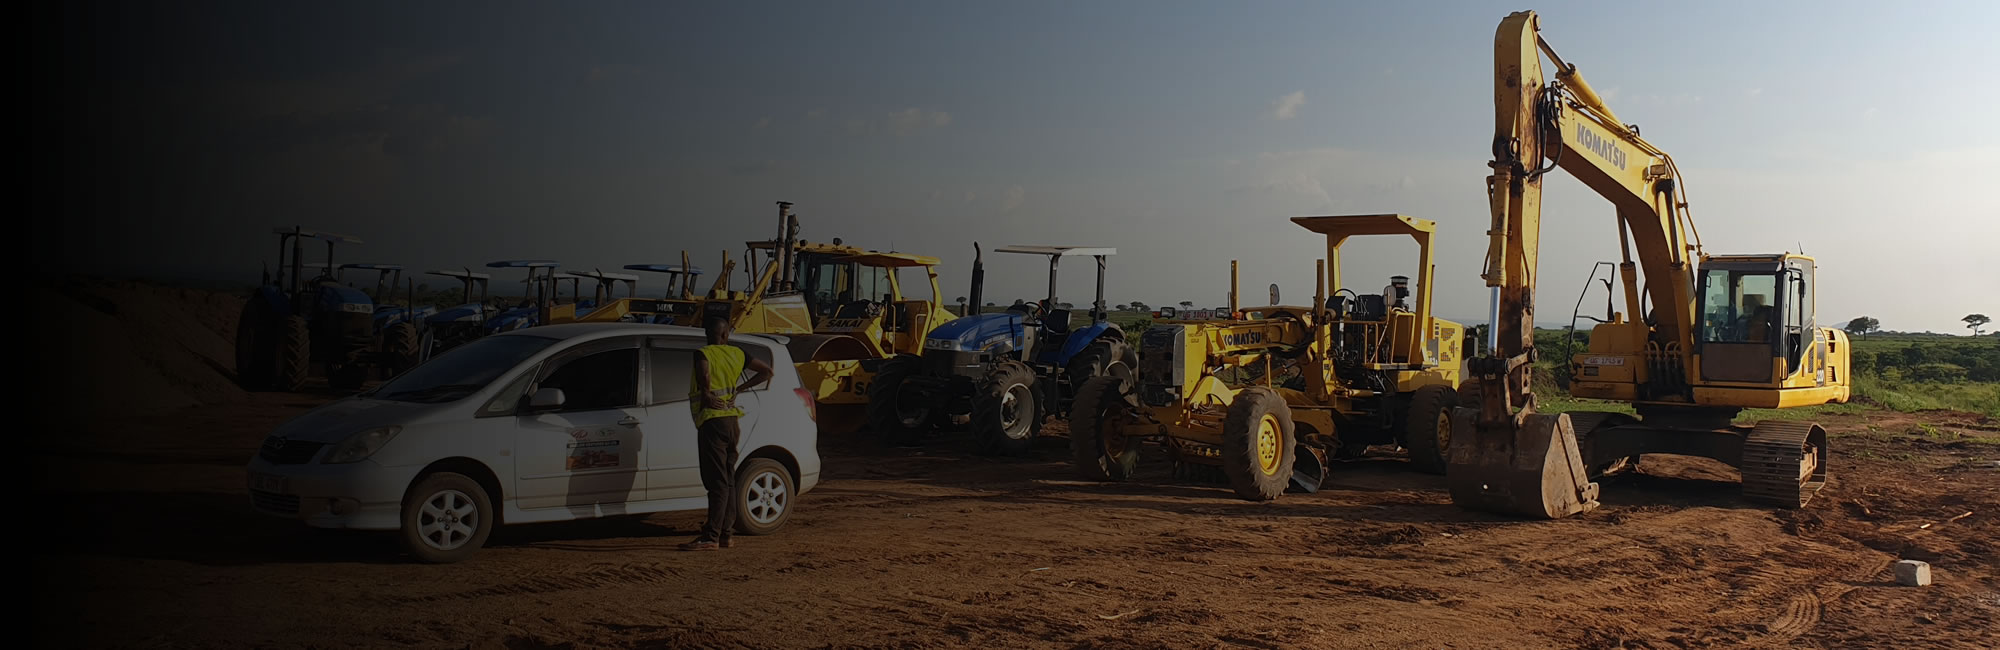 TRACTOR YARD - WE REPAIR AND PROVIDE SPARES FOR TRACTORS